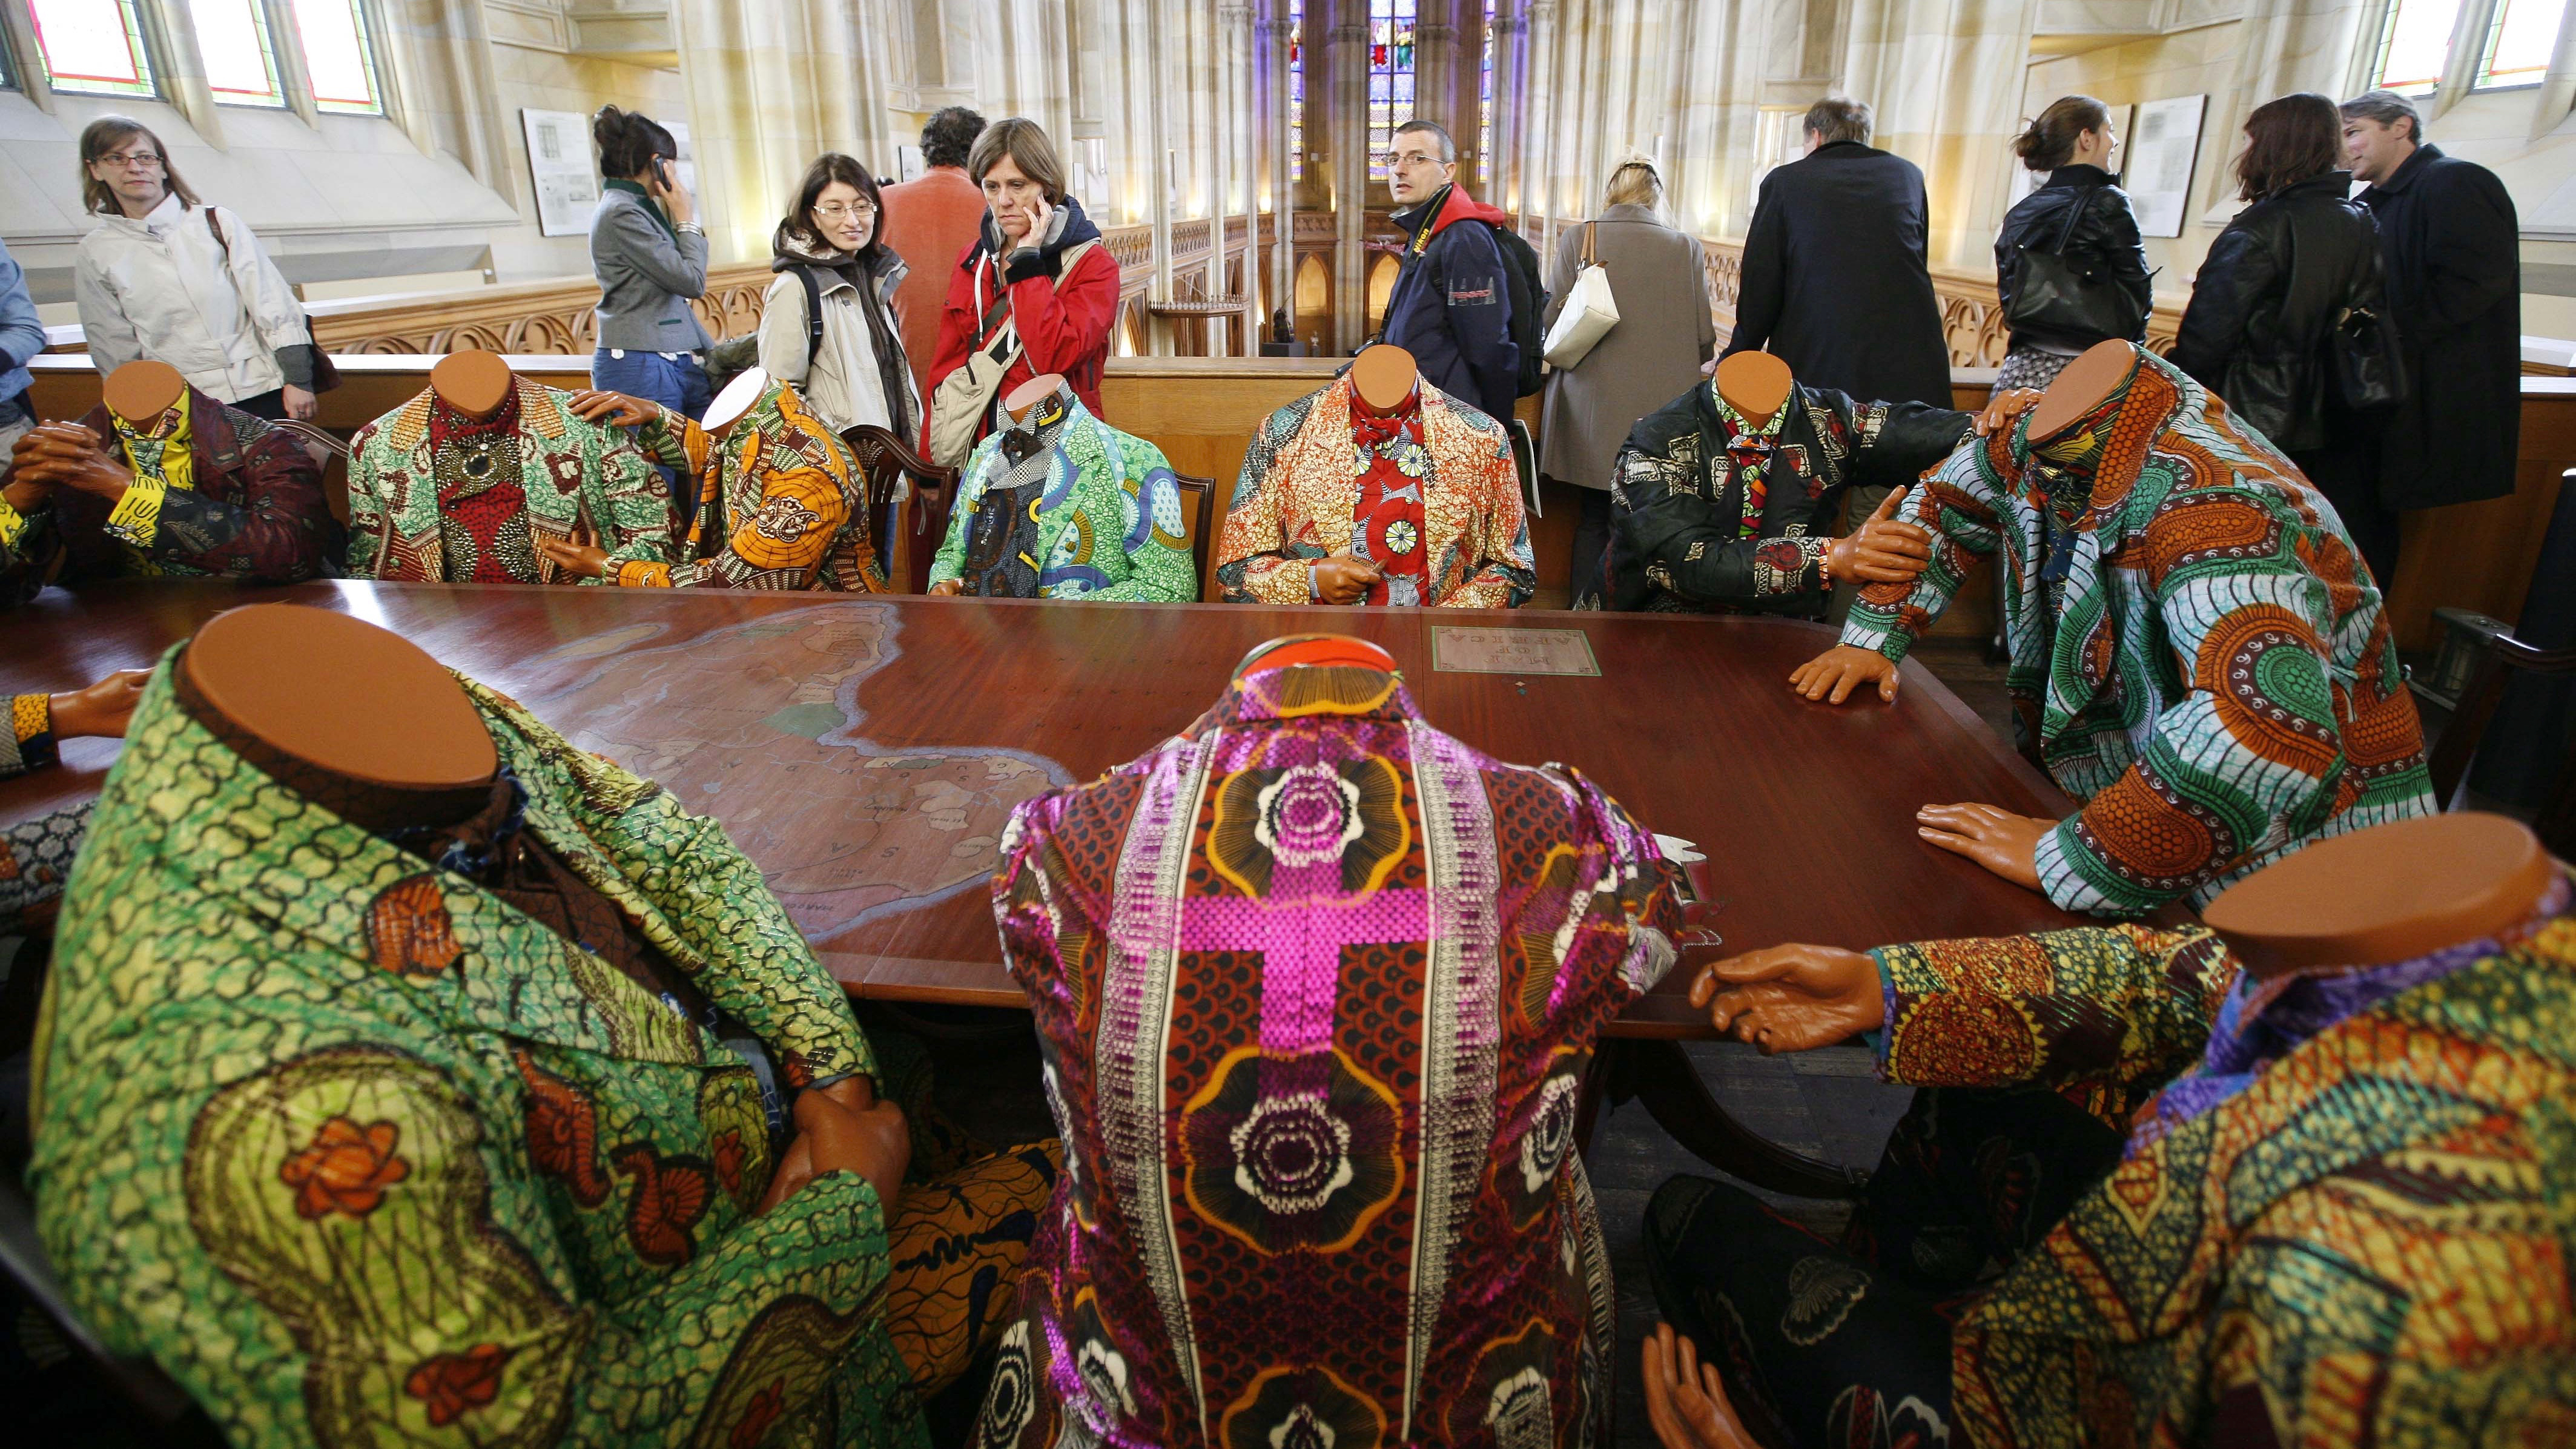 Global Christian Worship - Holy Week Art from Cameroon